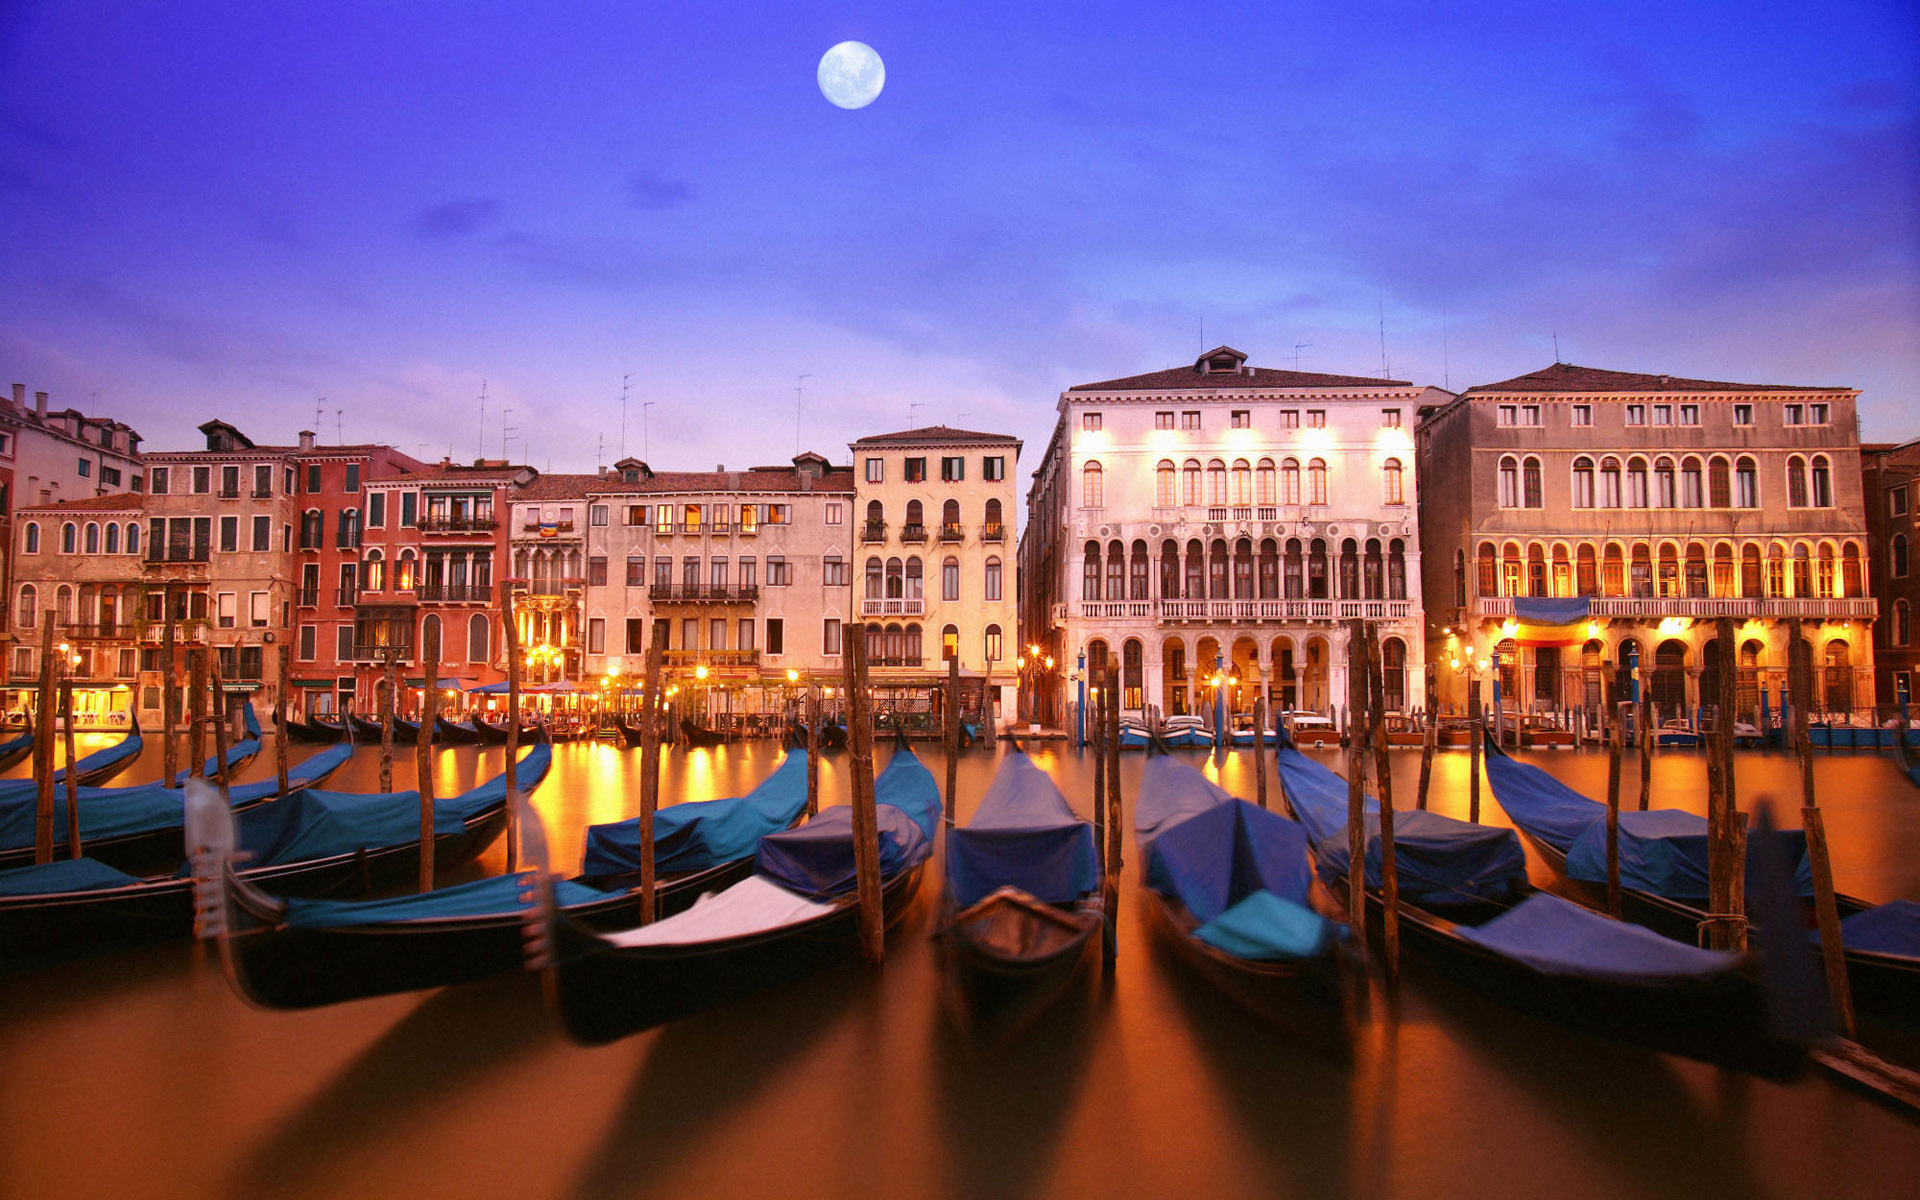 Venice-Gondola-Desktop-Wallpaper